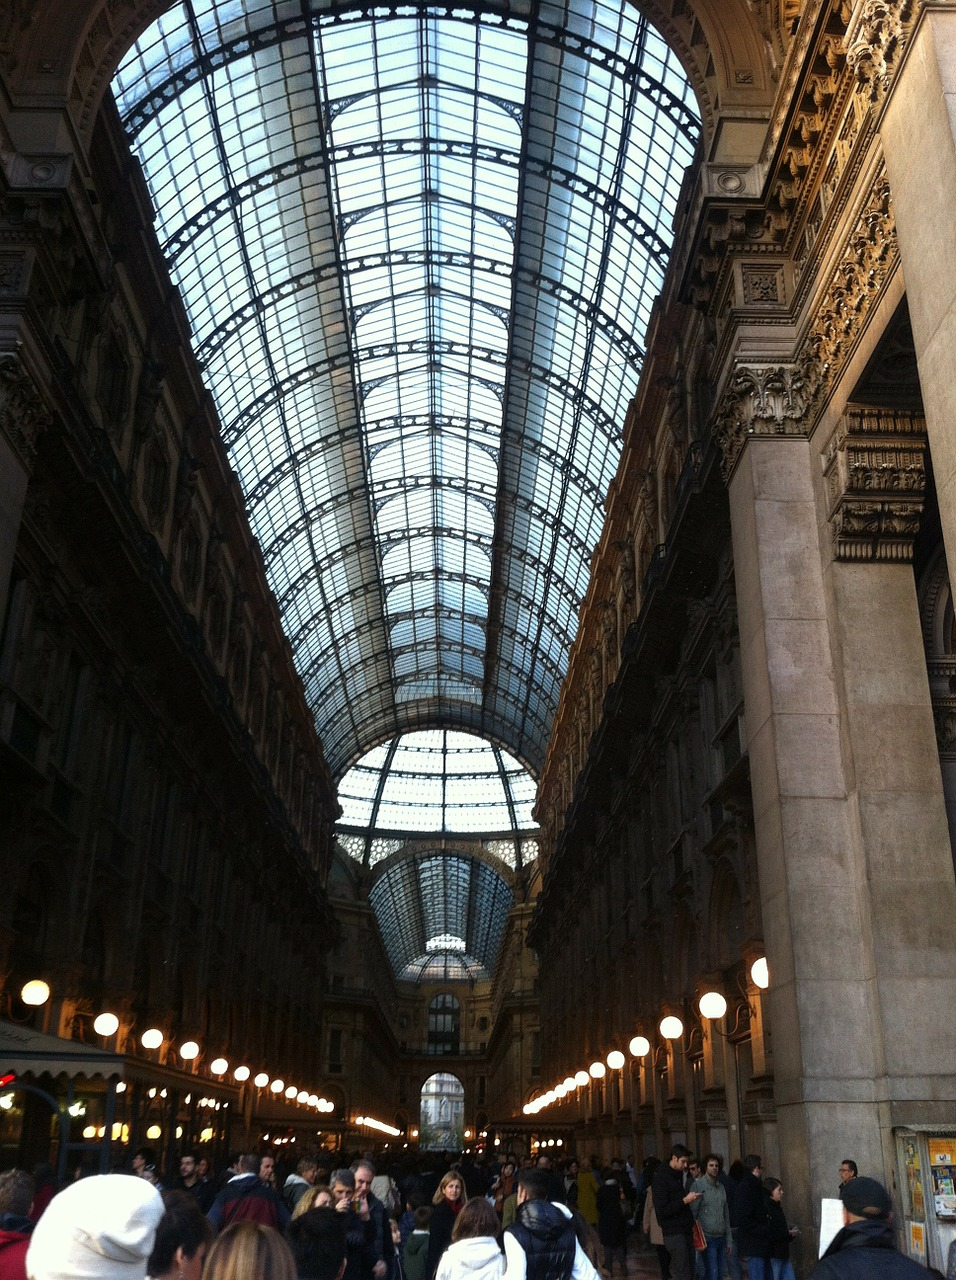 milan,art,gallery,free pictures, free photos, free images, royalty free, free illustrations, public domain